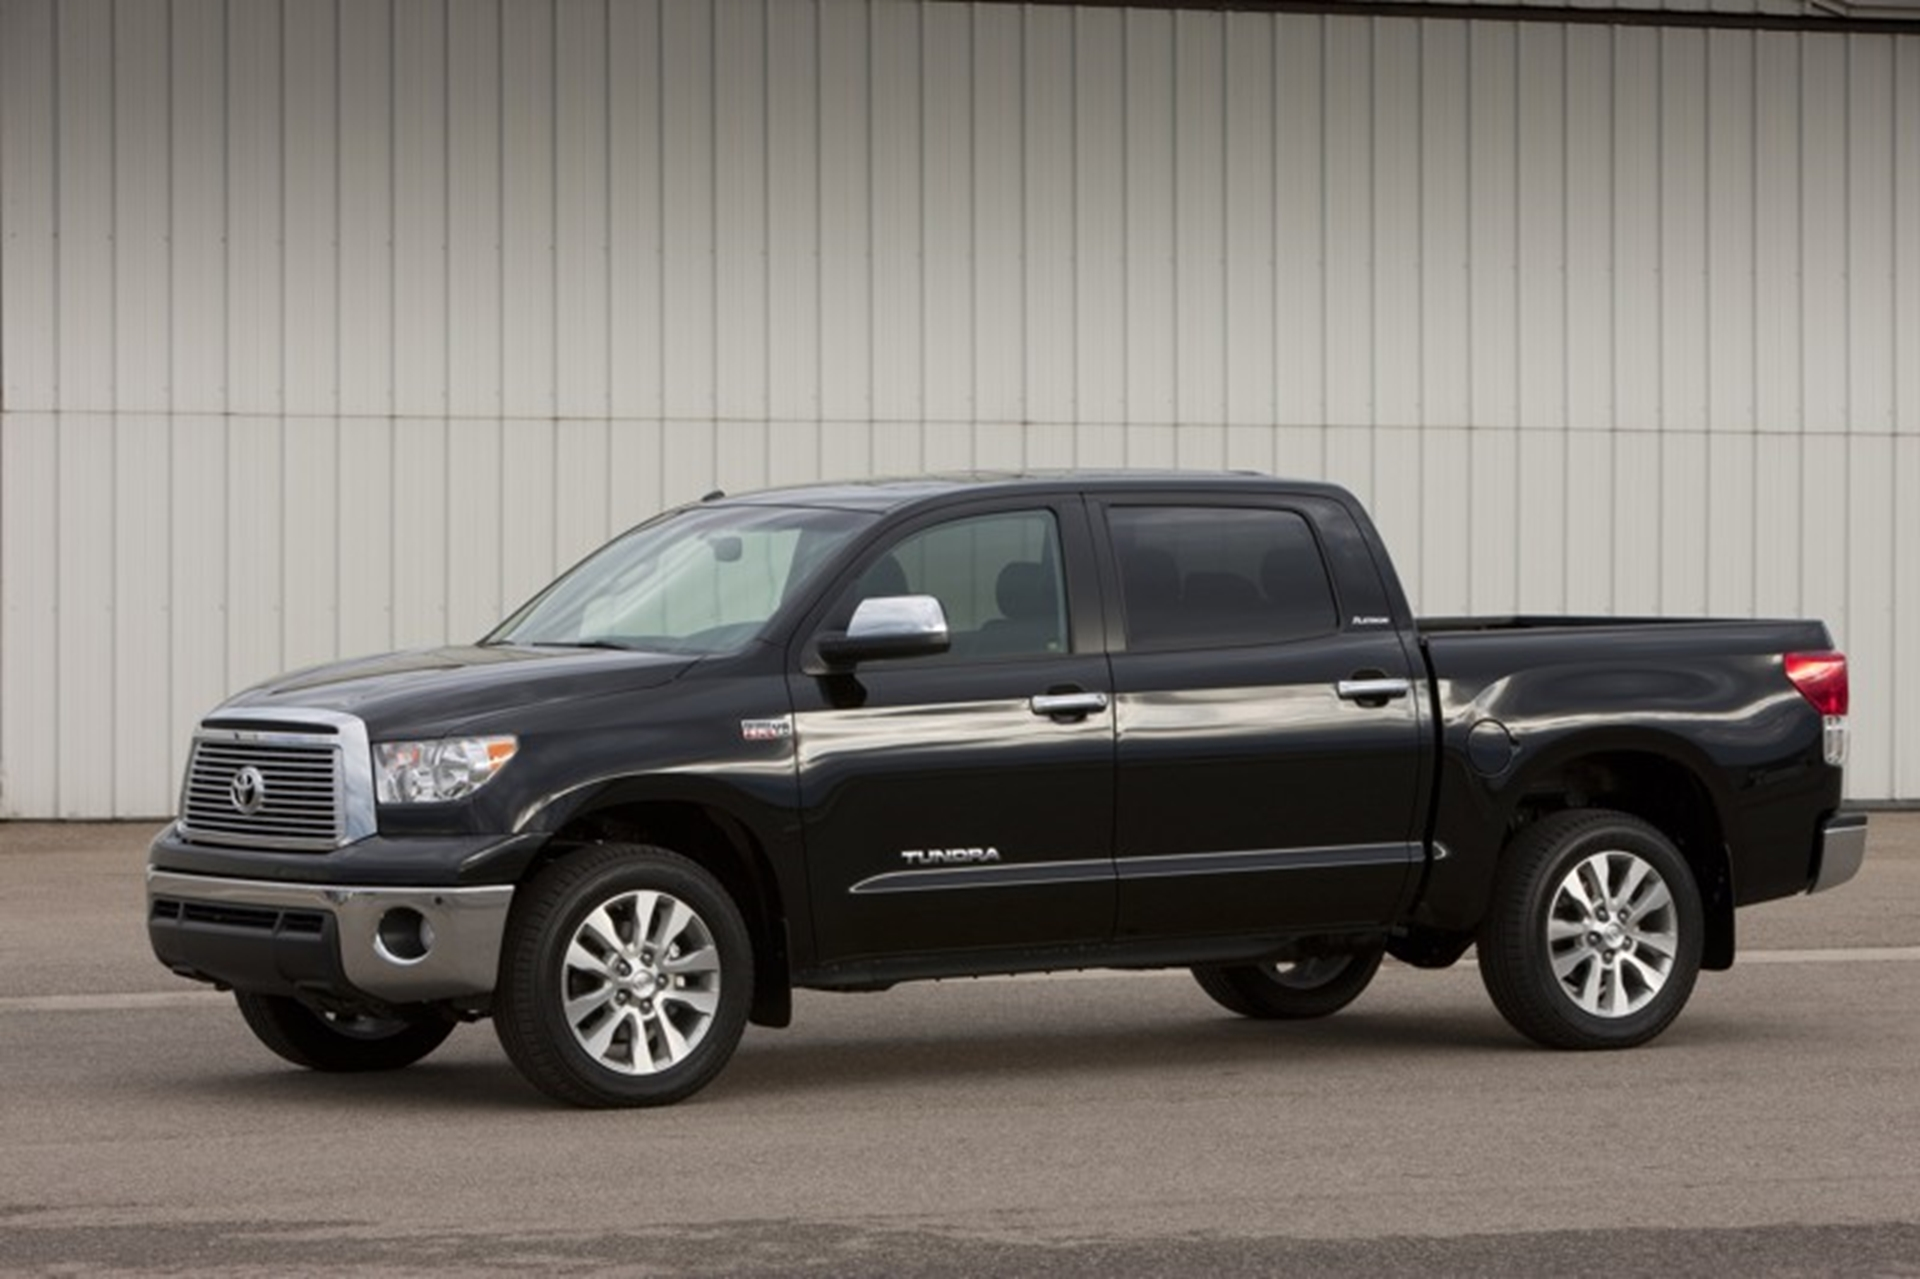 Toyota Tundra Provides Outstanding Value and Dependability in the